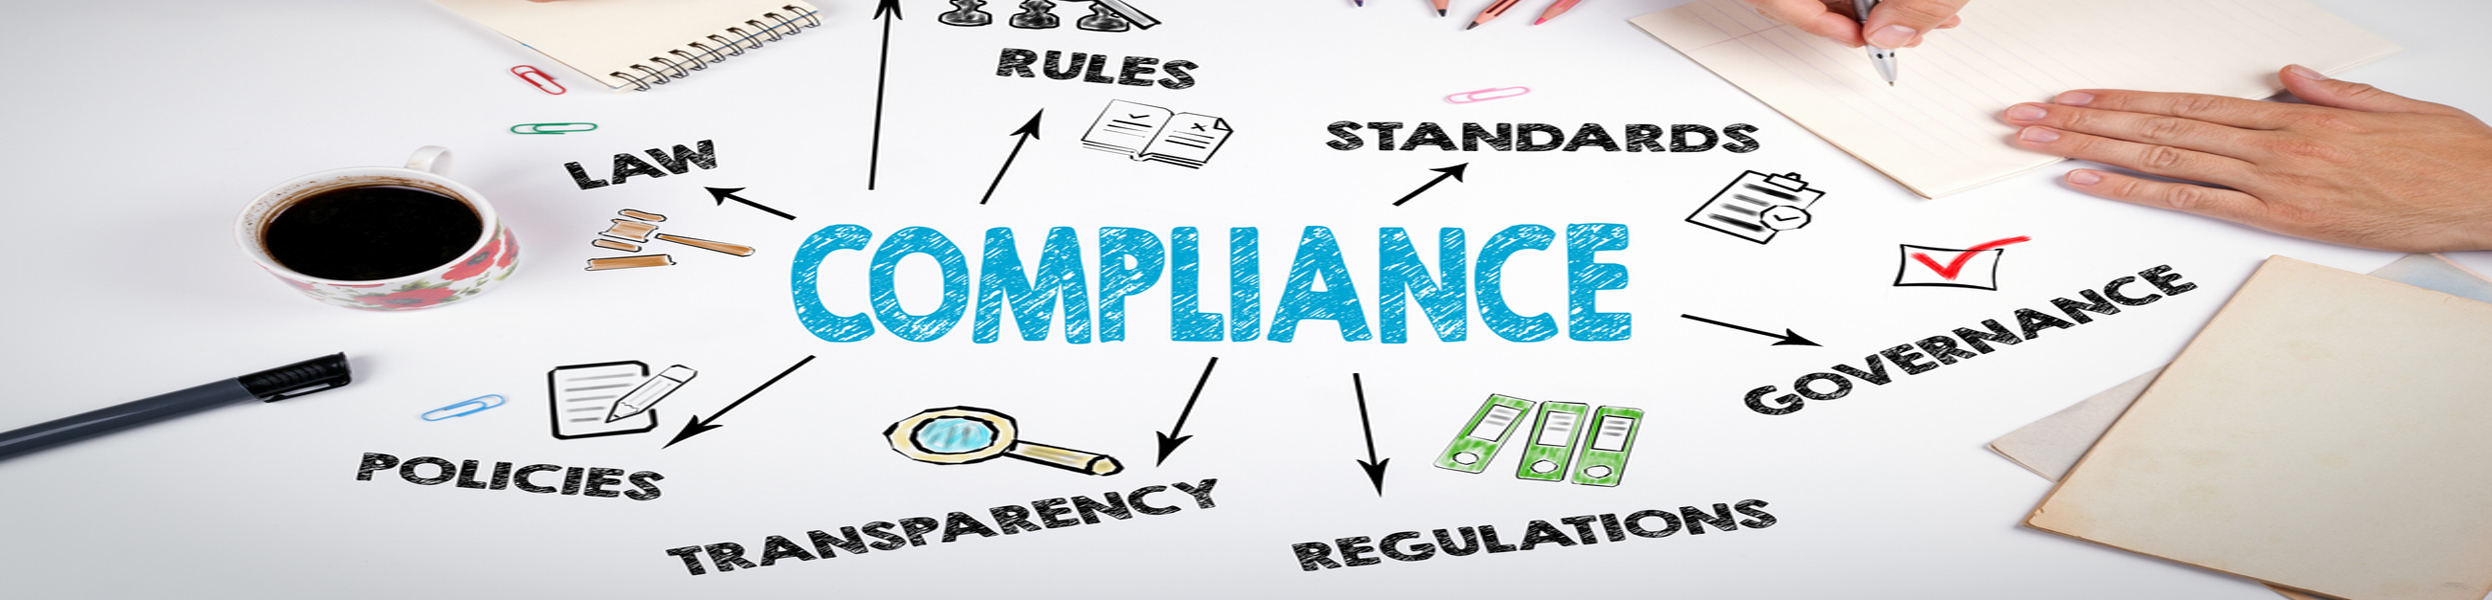 services-compliance-2020.jpg